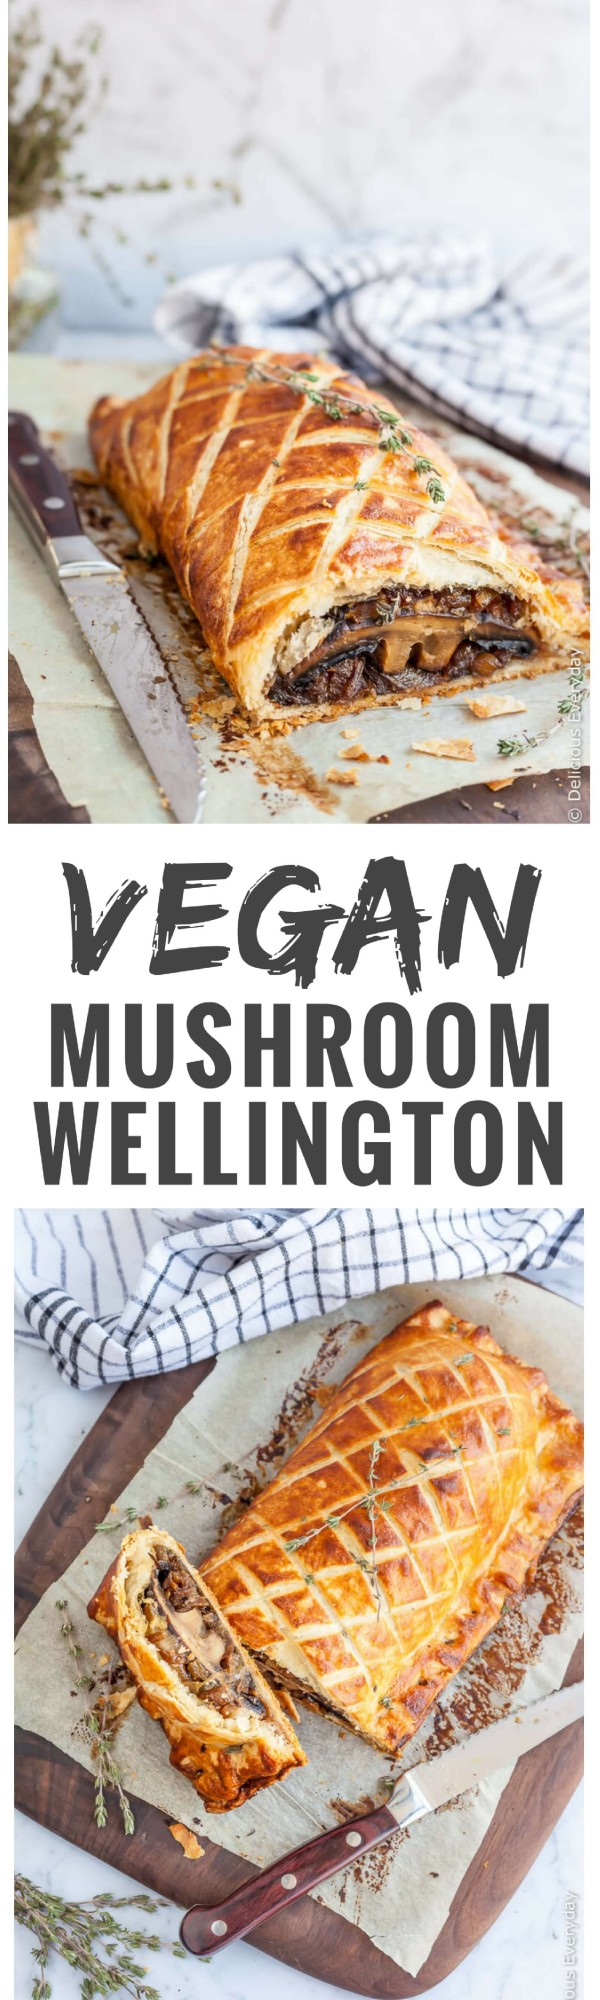 Get the #recipe #Vegan #Mushroom Wellington @recipes_to_go